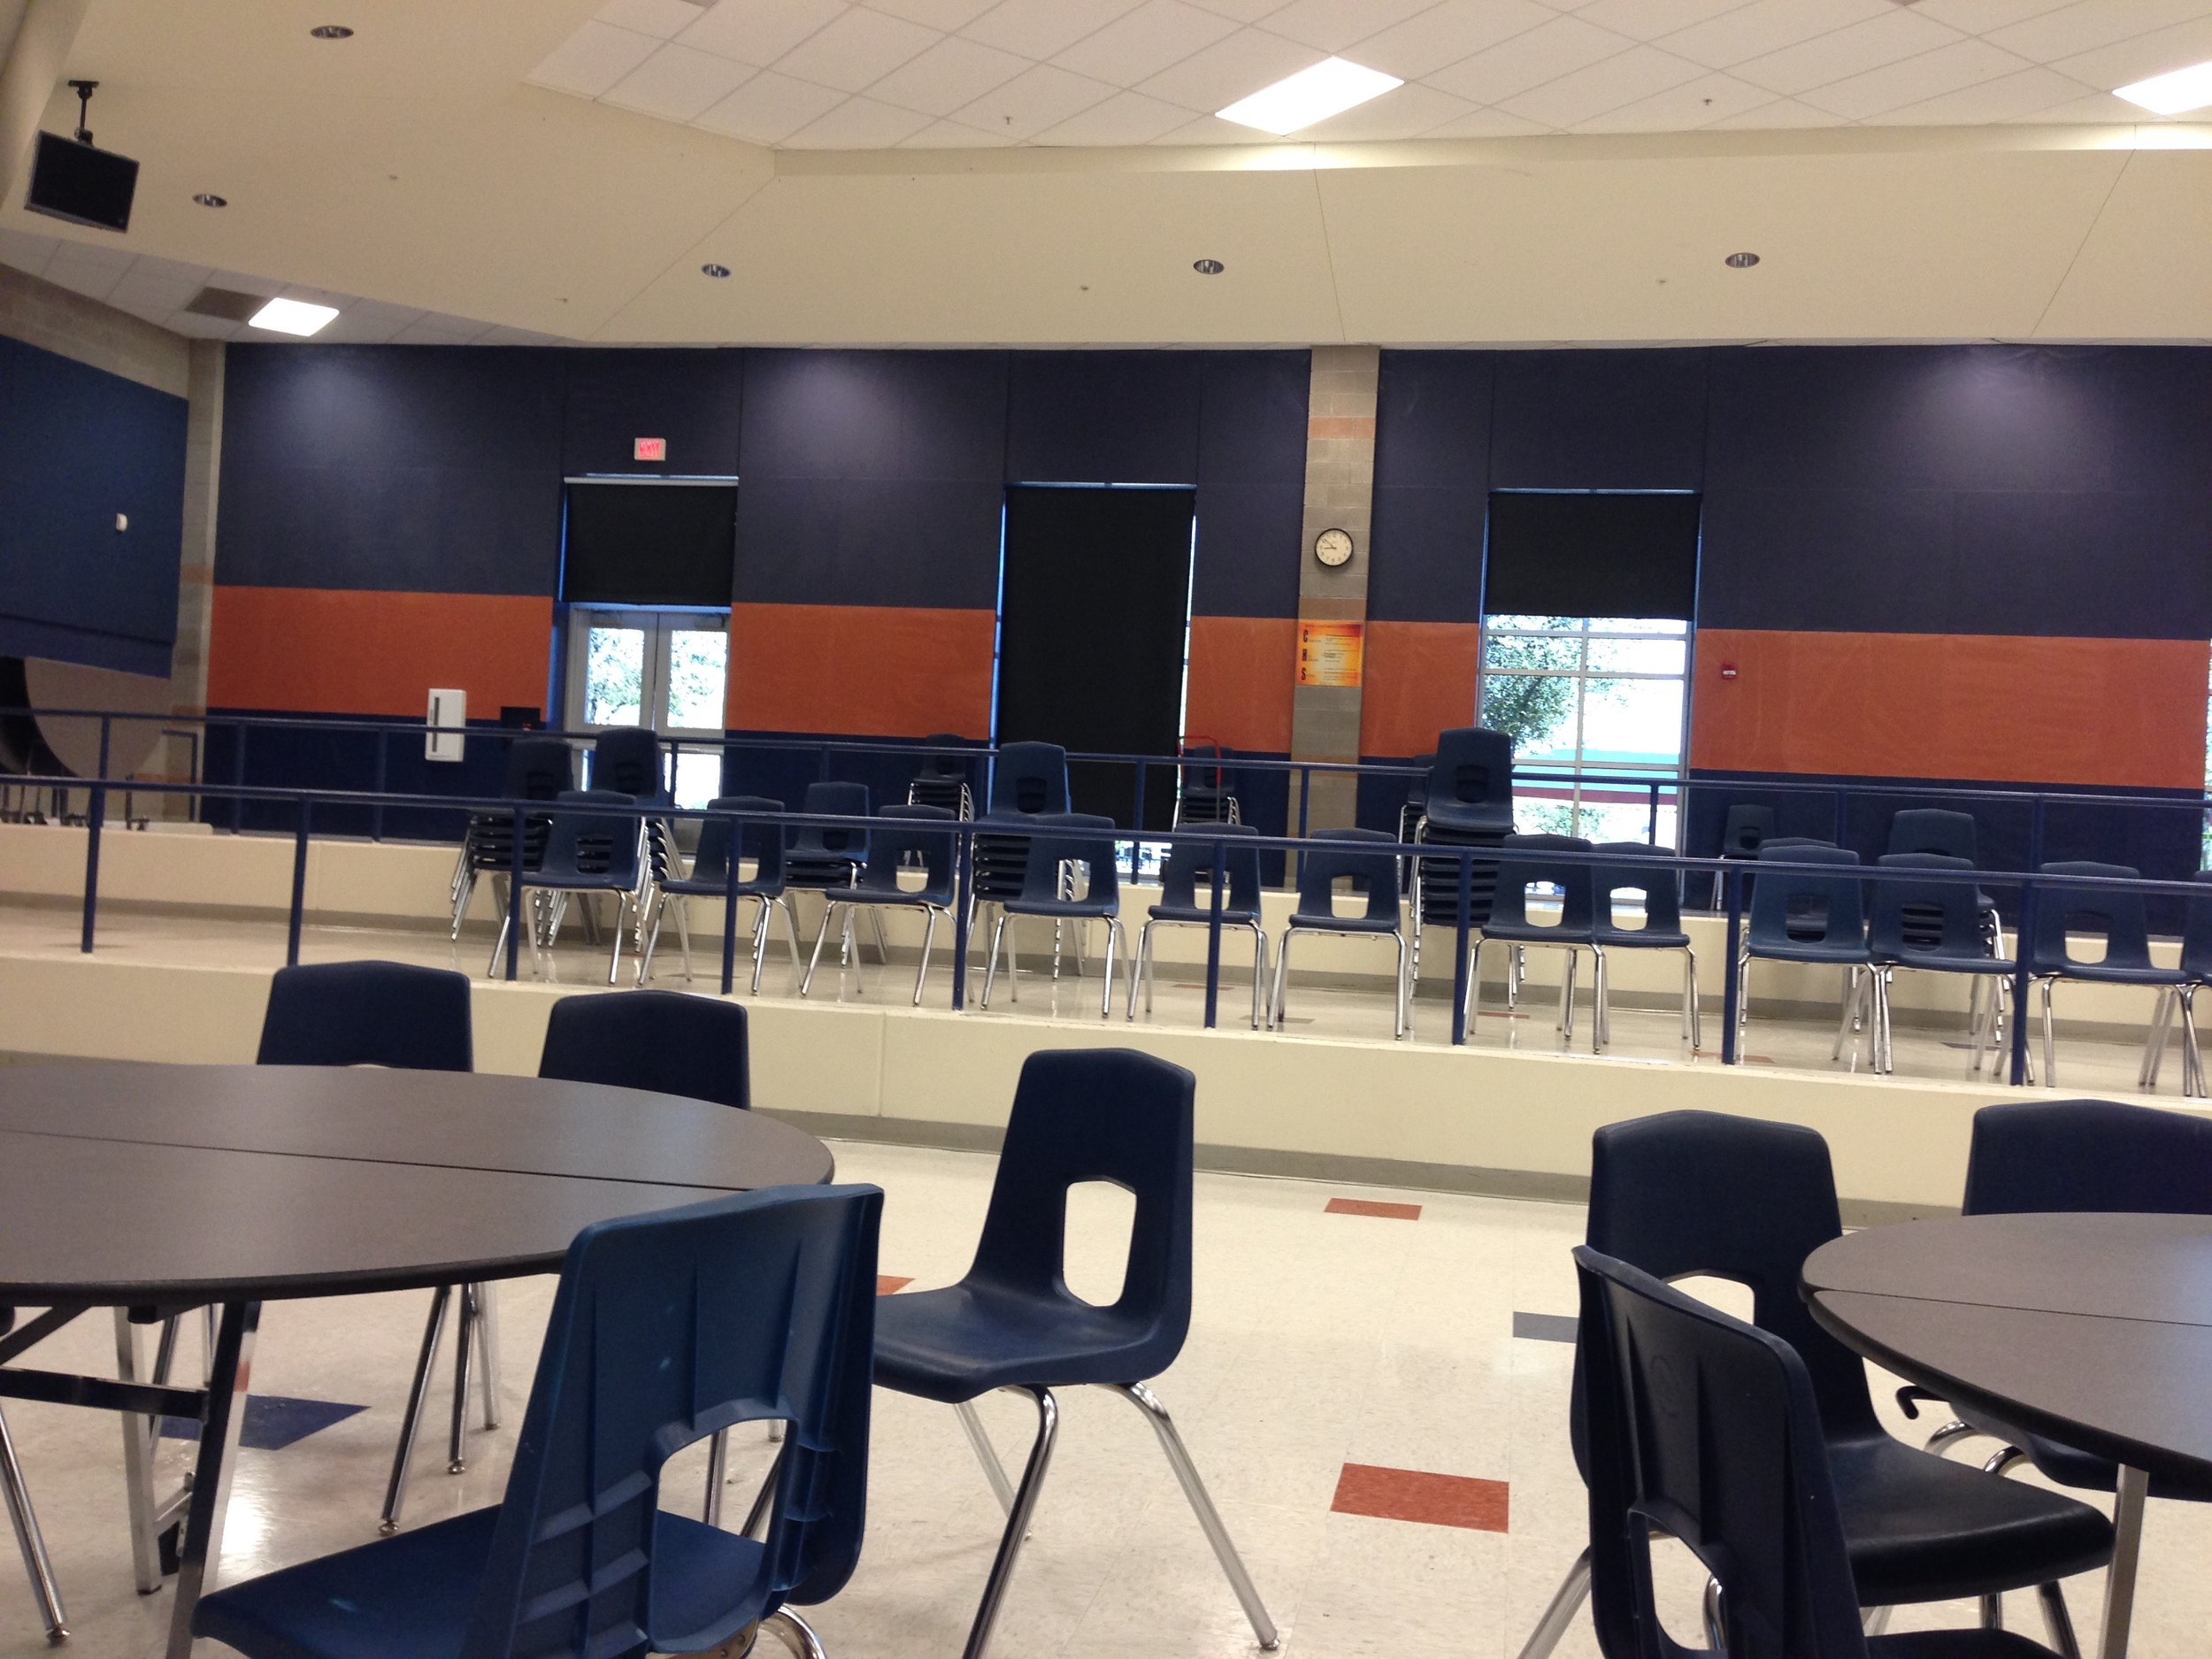 The cafeteria space at Cienega High School consists of these tiered levels. When we discussed finding the best cover, one administrator pointed out that if someone had to drop, they could use that tiered concrete to their advantage.